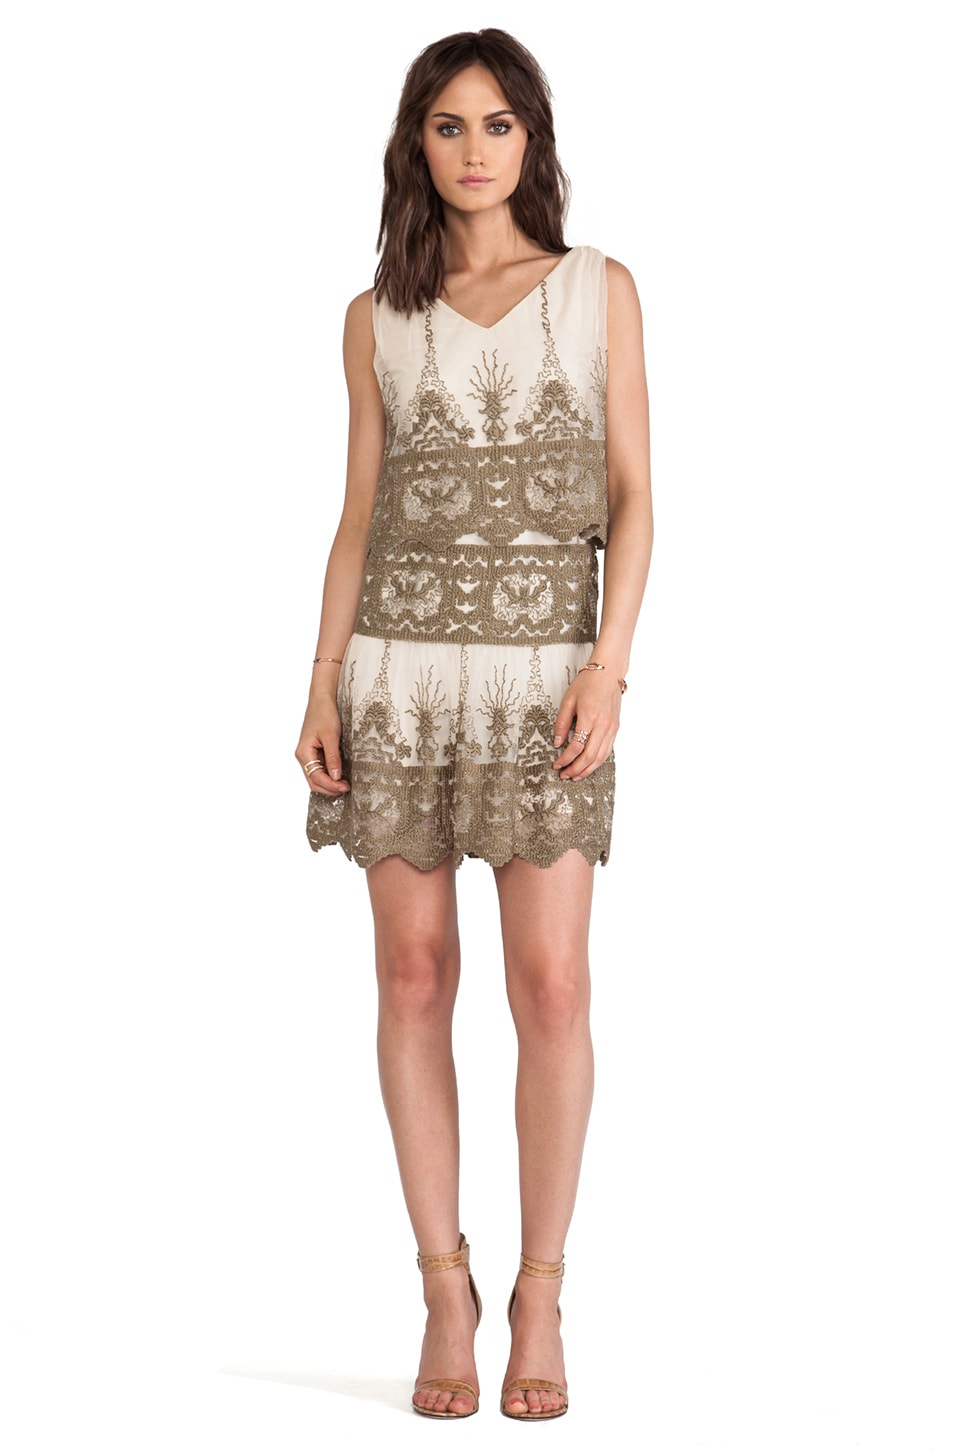 Anna Sui Secret Garden Embroidery Dress in Sand Multi